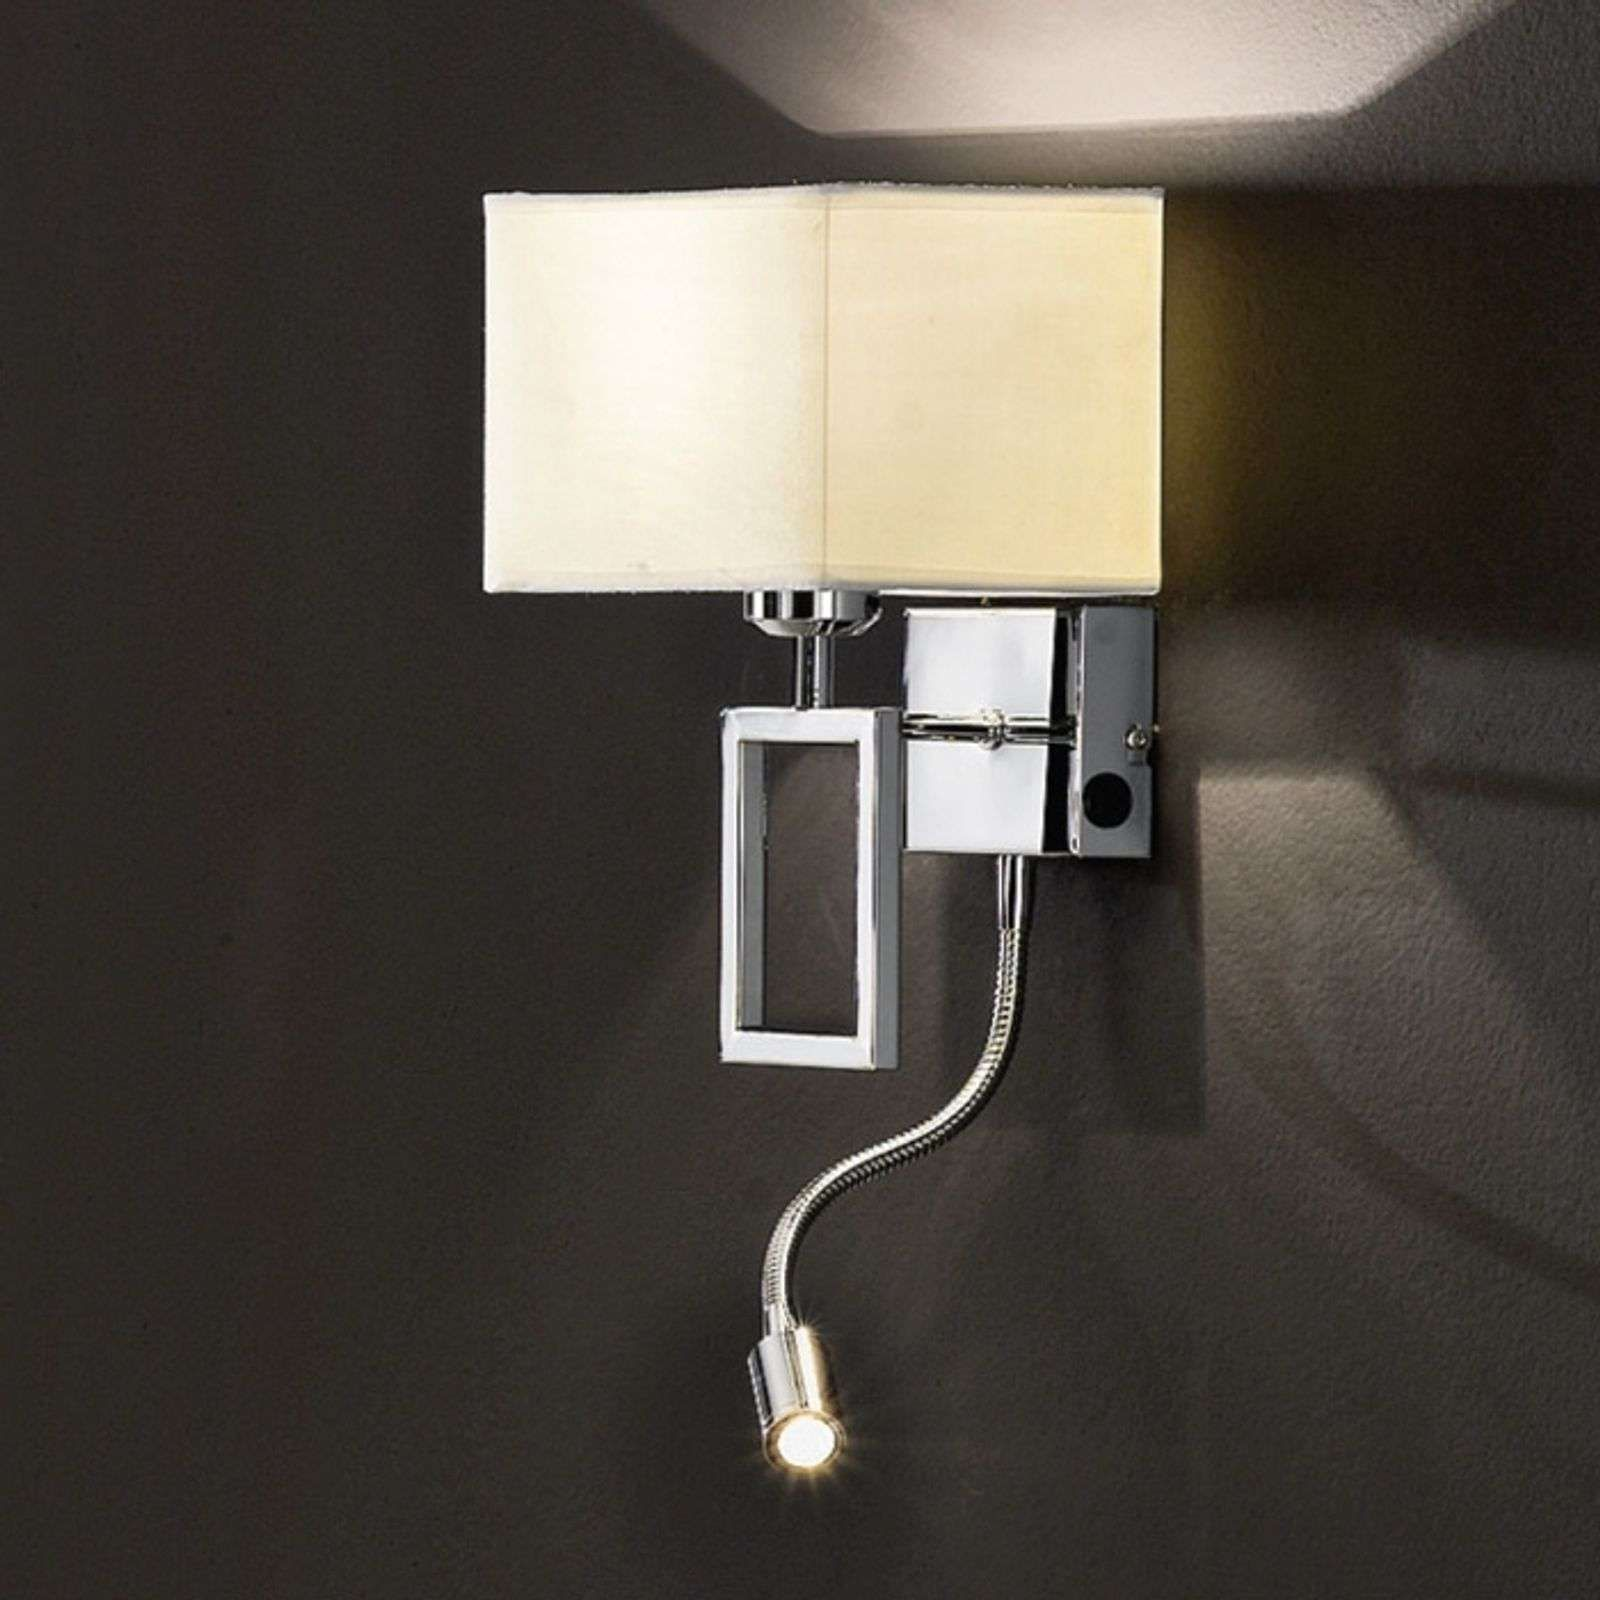 Wandlampen Fürs Bad Wandleuchte Up Down | Lampen Wandlampen | Design ...